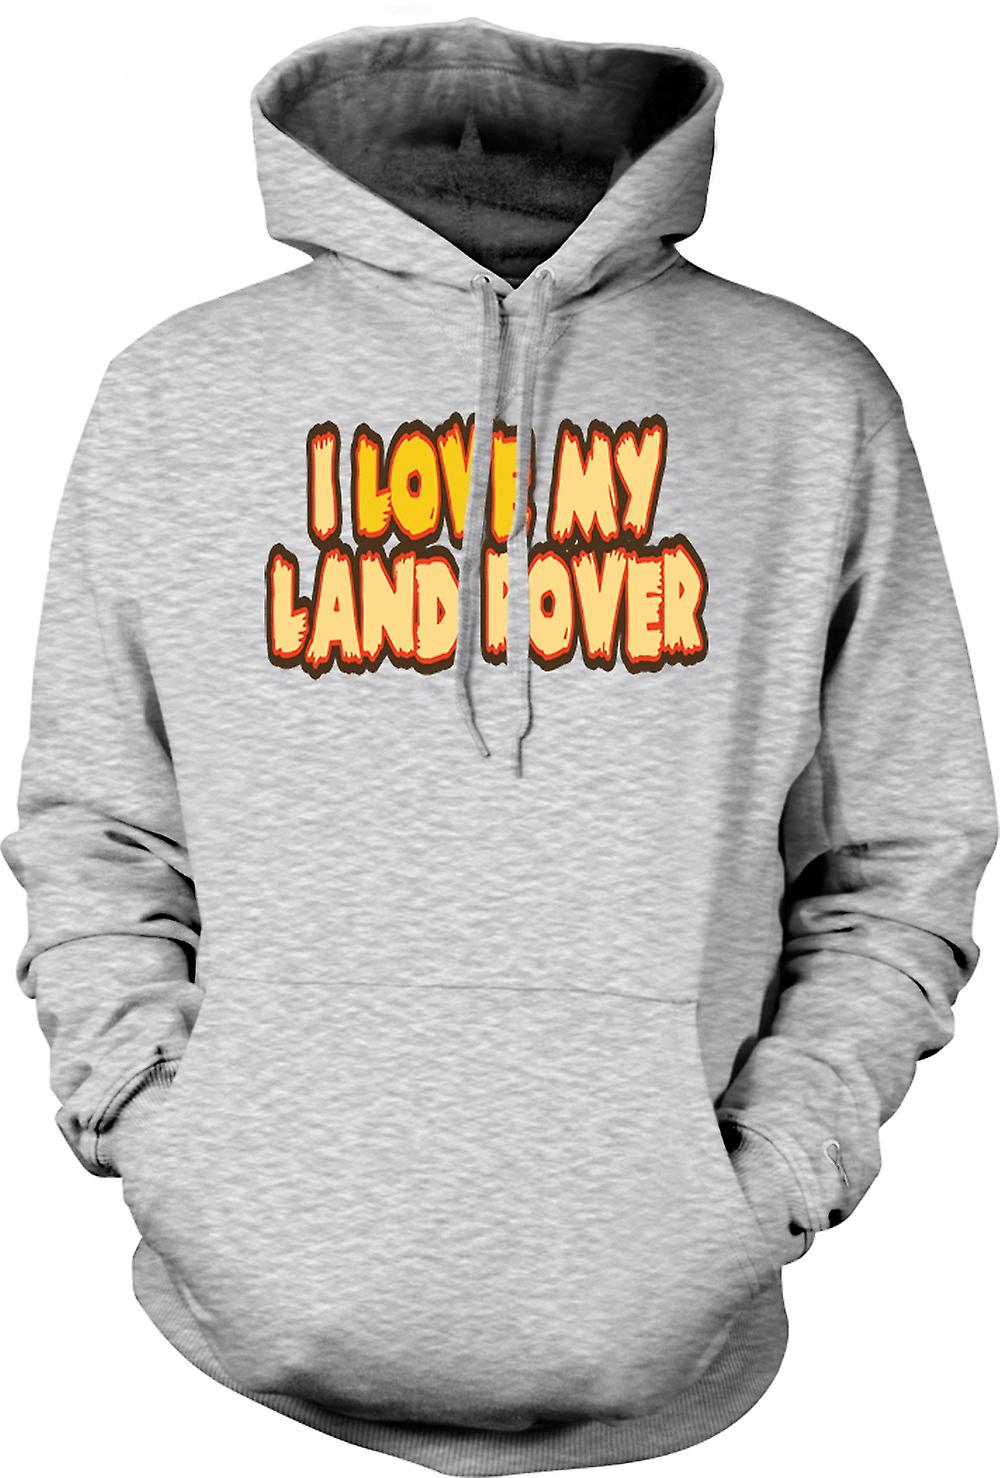 Mens Hoodie - I Love My Land Rover - Car Enthusiast